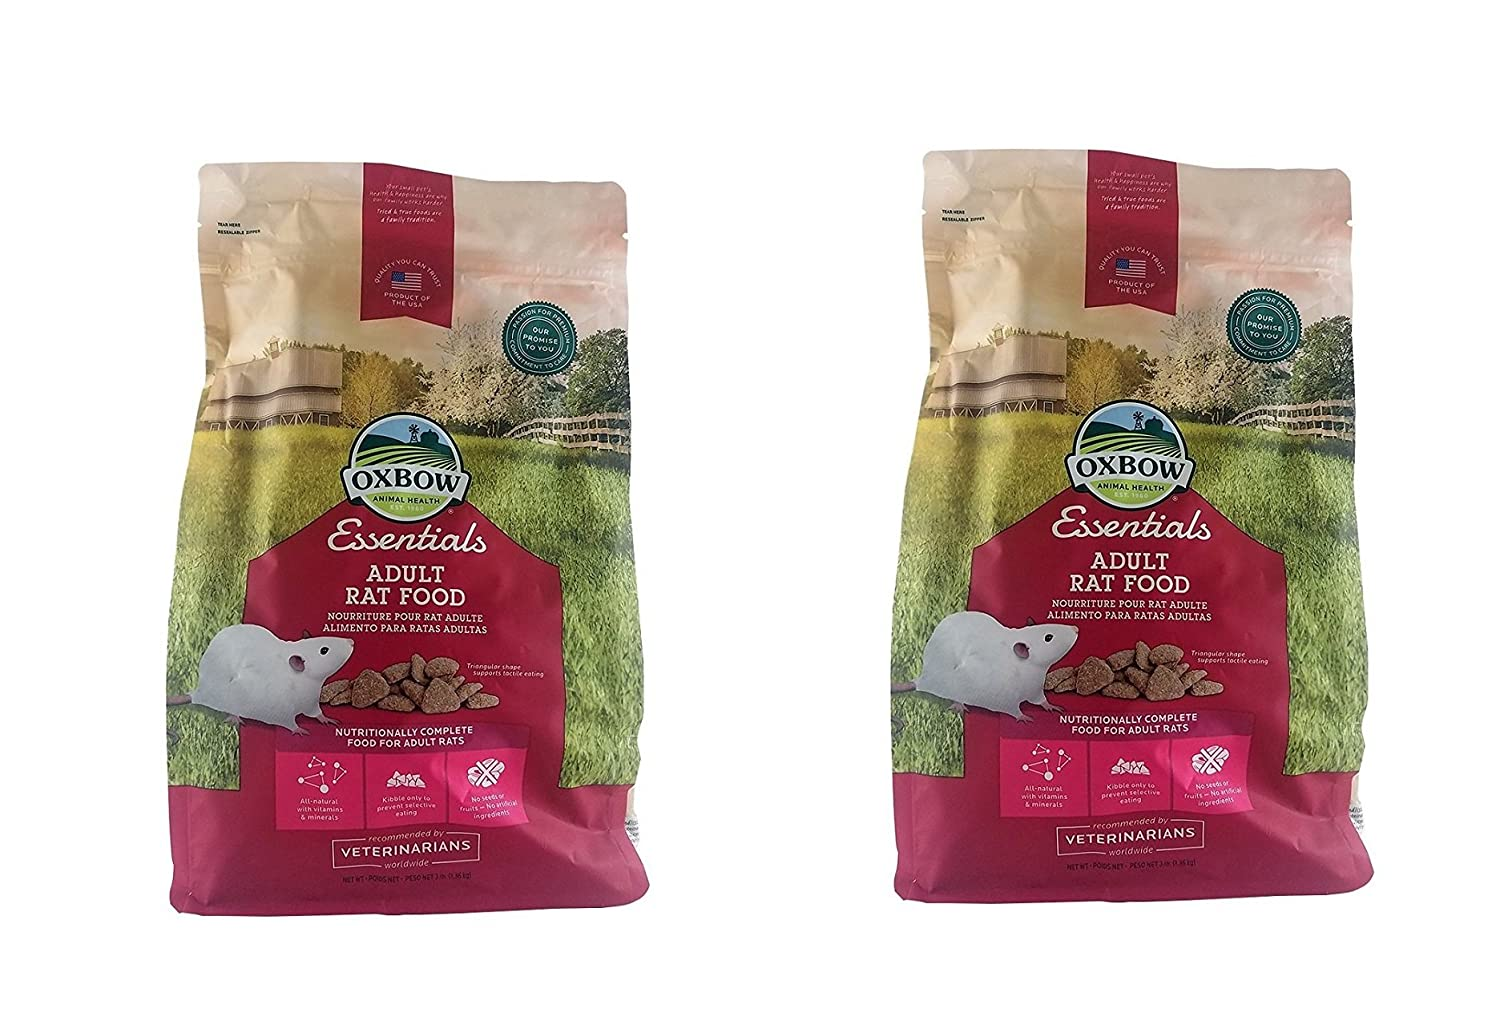 2Pack (3-Pound Bag) Oxbow Essentials Adult Rat Food 6 Pound (2 x 3 Pound Bags)